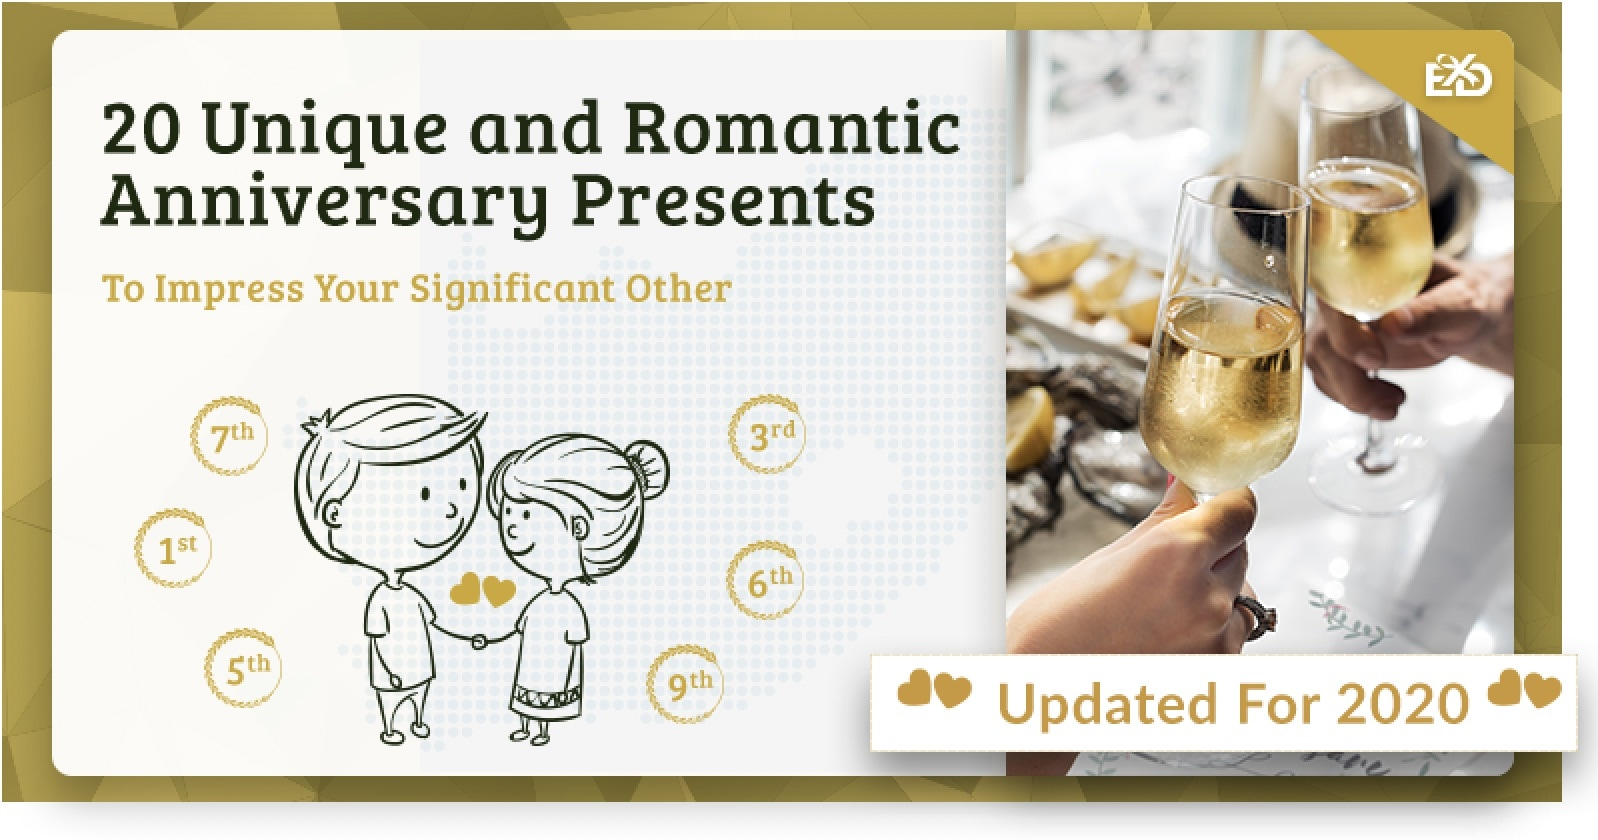 144613443e62 20 Unique and Romantic Anniversary Presents to Impress Your Significant  Other - Experience Days